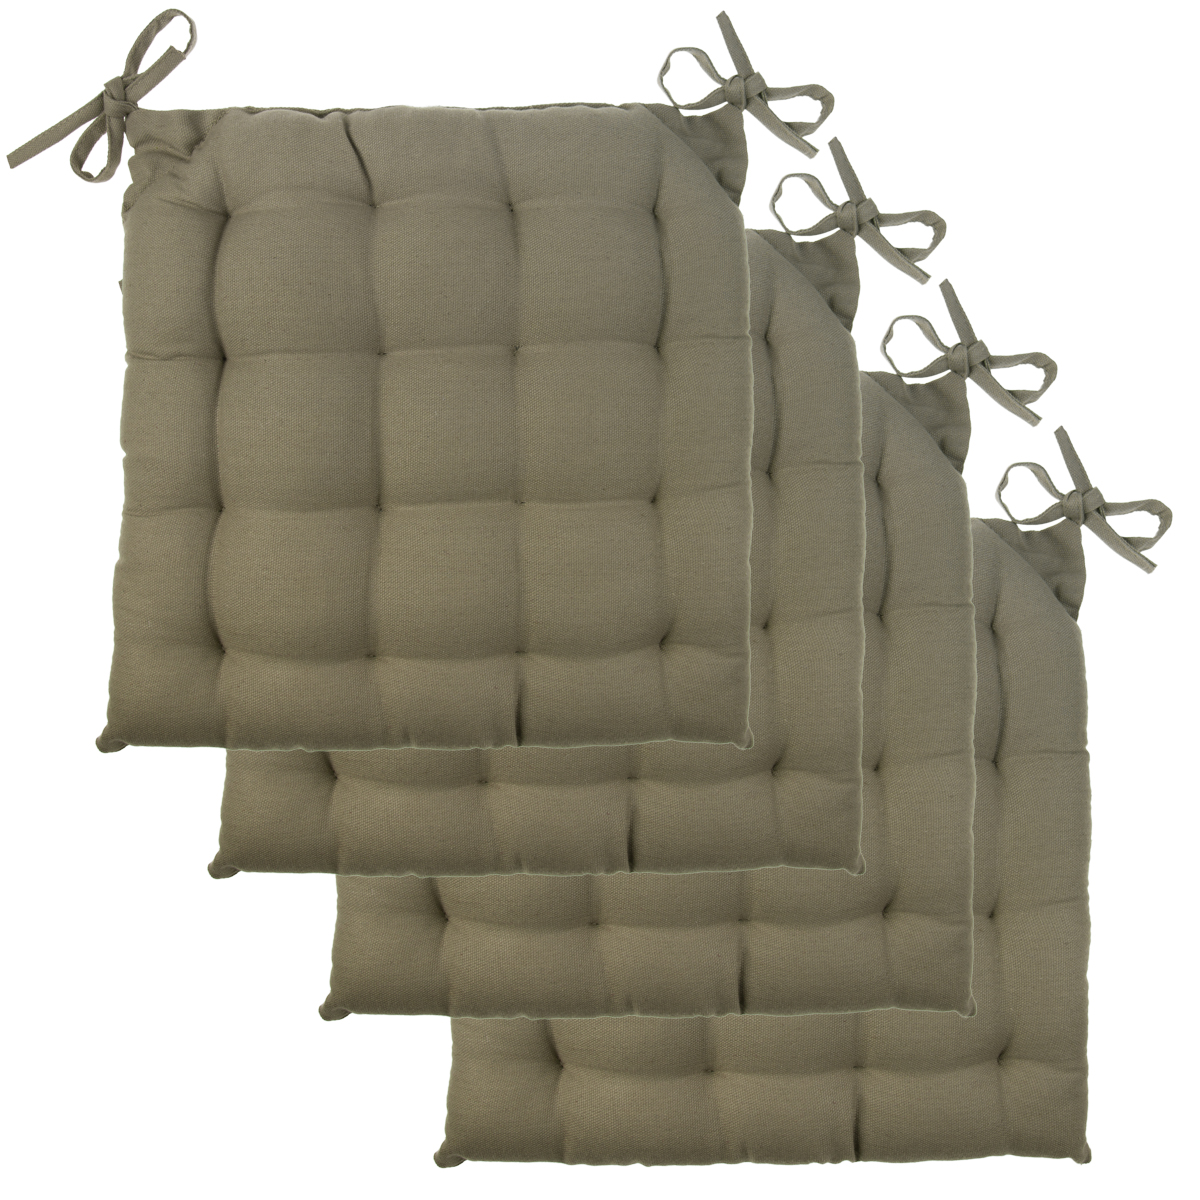 4pk chair pads set soft tufted cotton canvas padded seat cushions with ties ebay. Black Bedroom Furniture Sets. Home Design Ideas